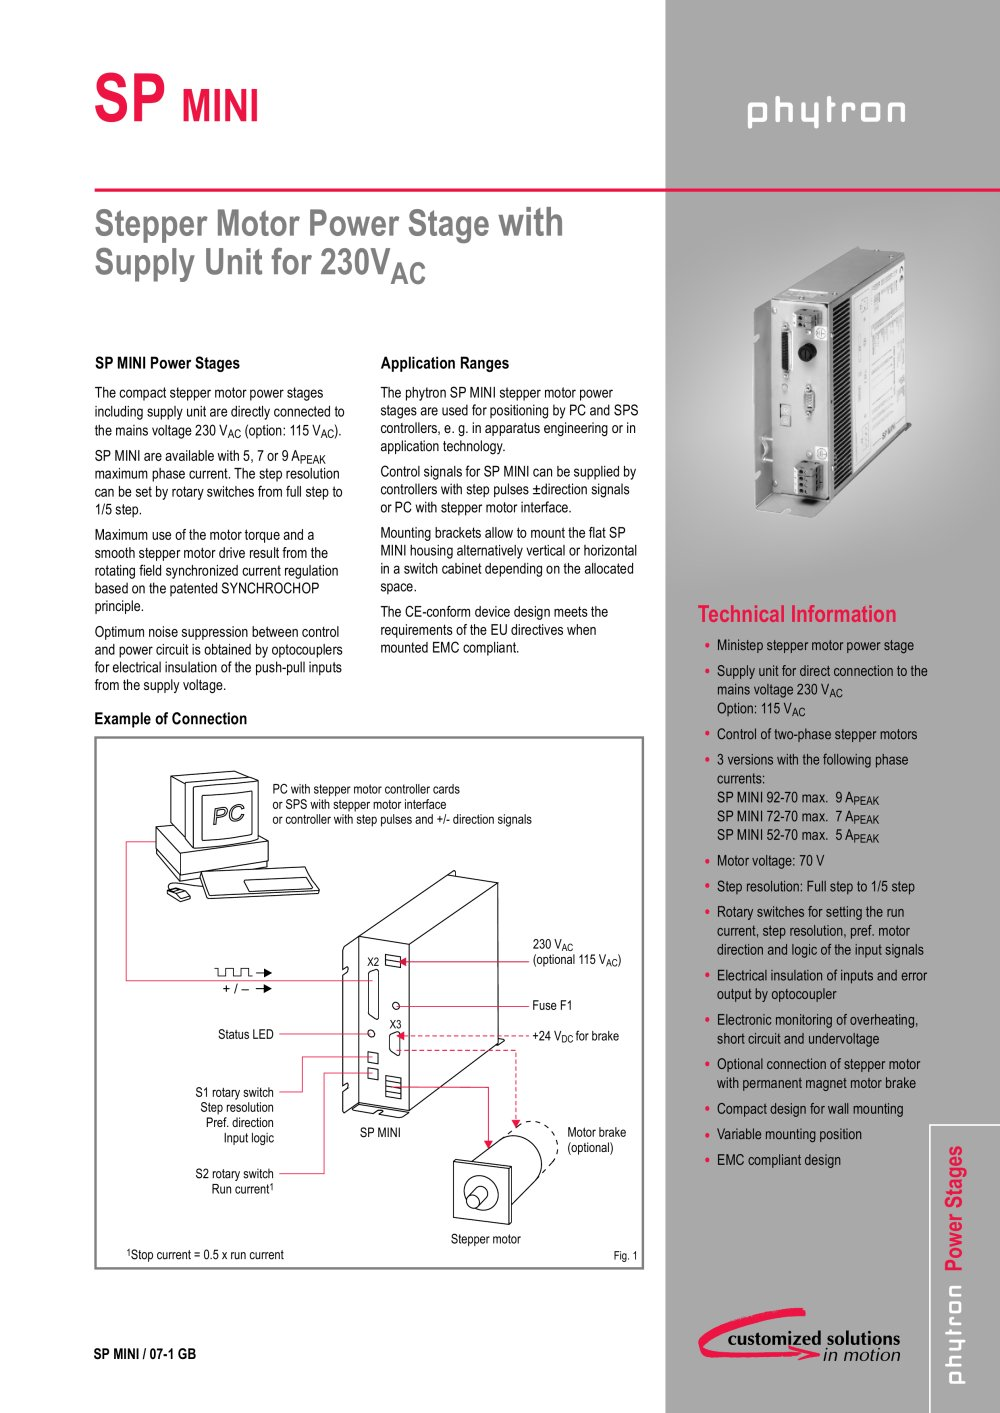 Stepper Motor Power Stage Sp Mini Phytron Gmbh Pdf Catalogs Controller Electronic Circuit Diagram Pictures 1 2 Pages